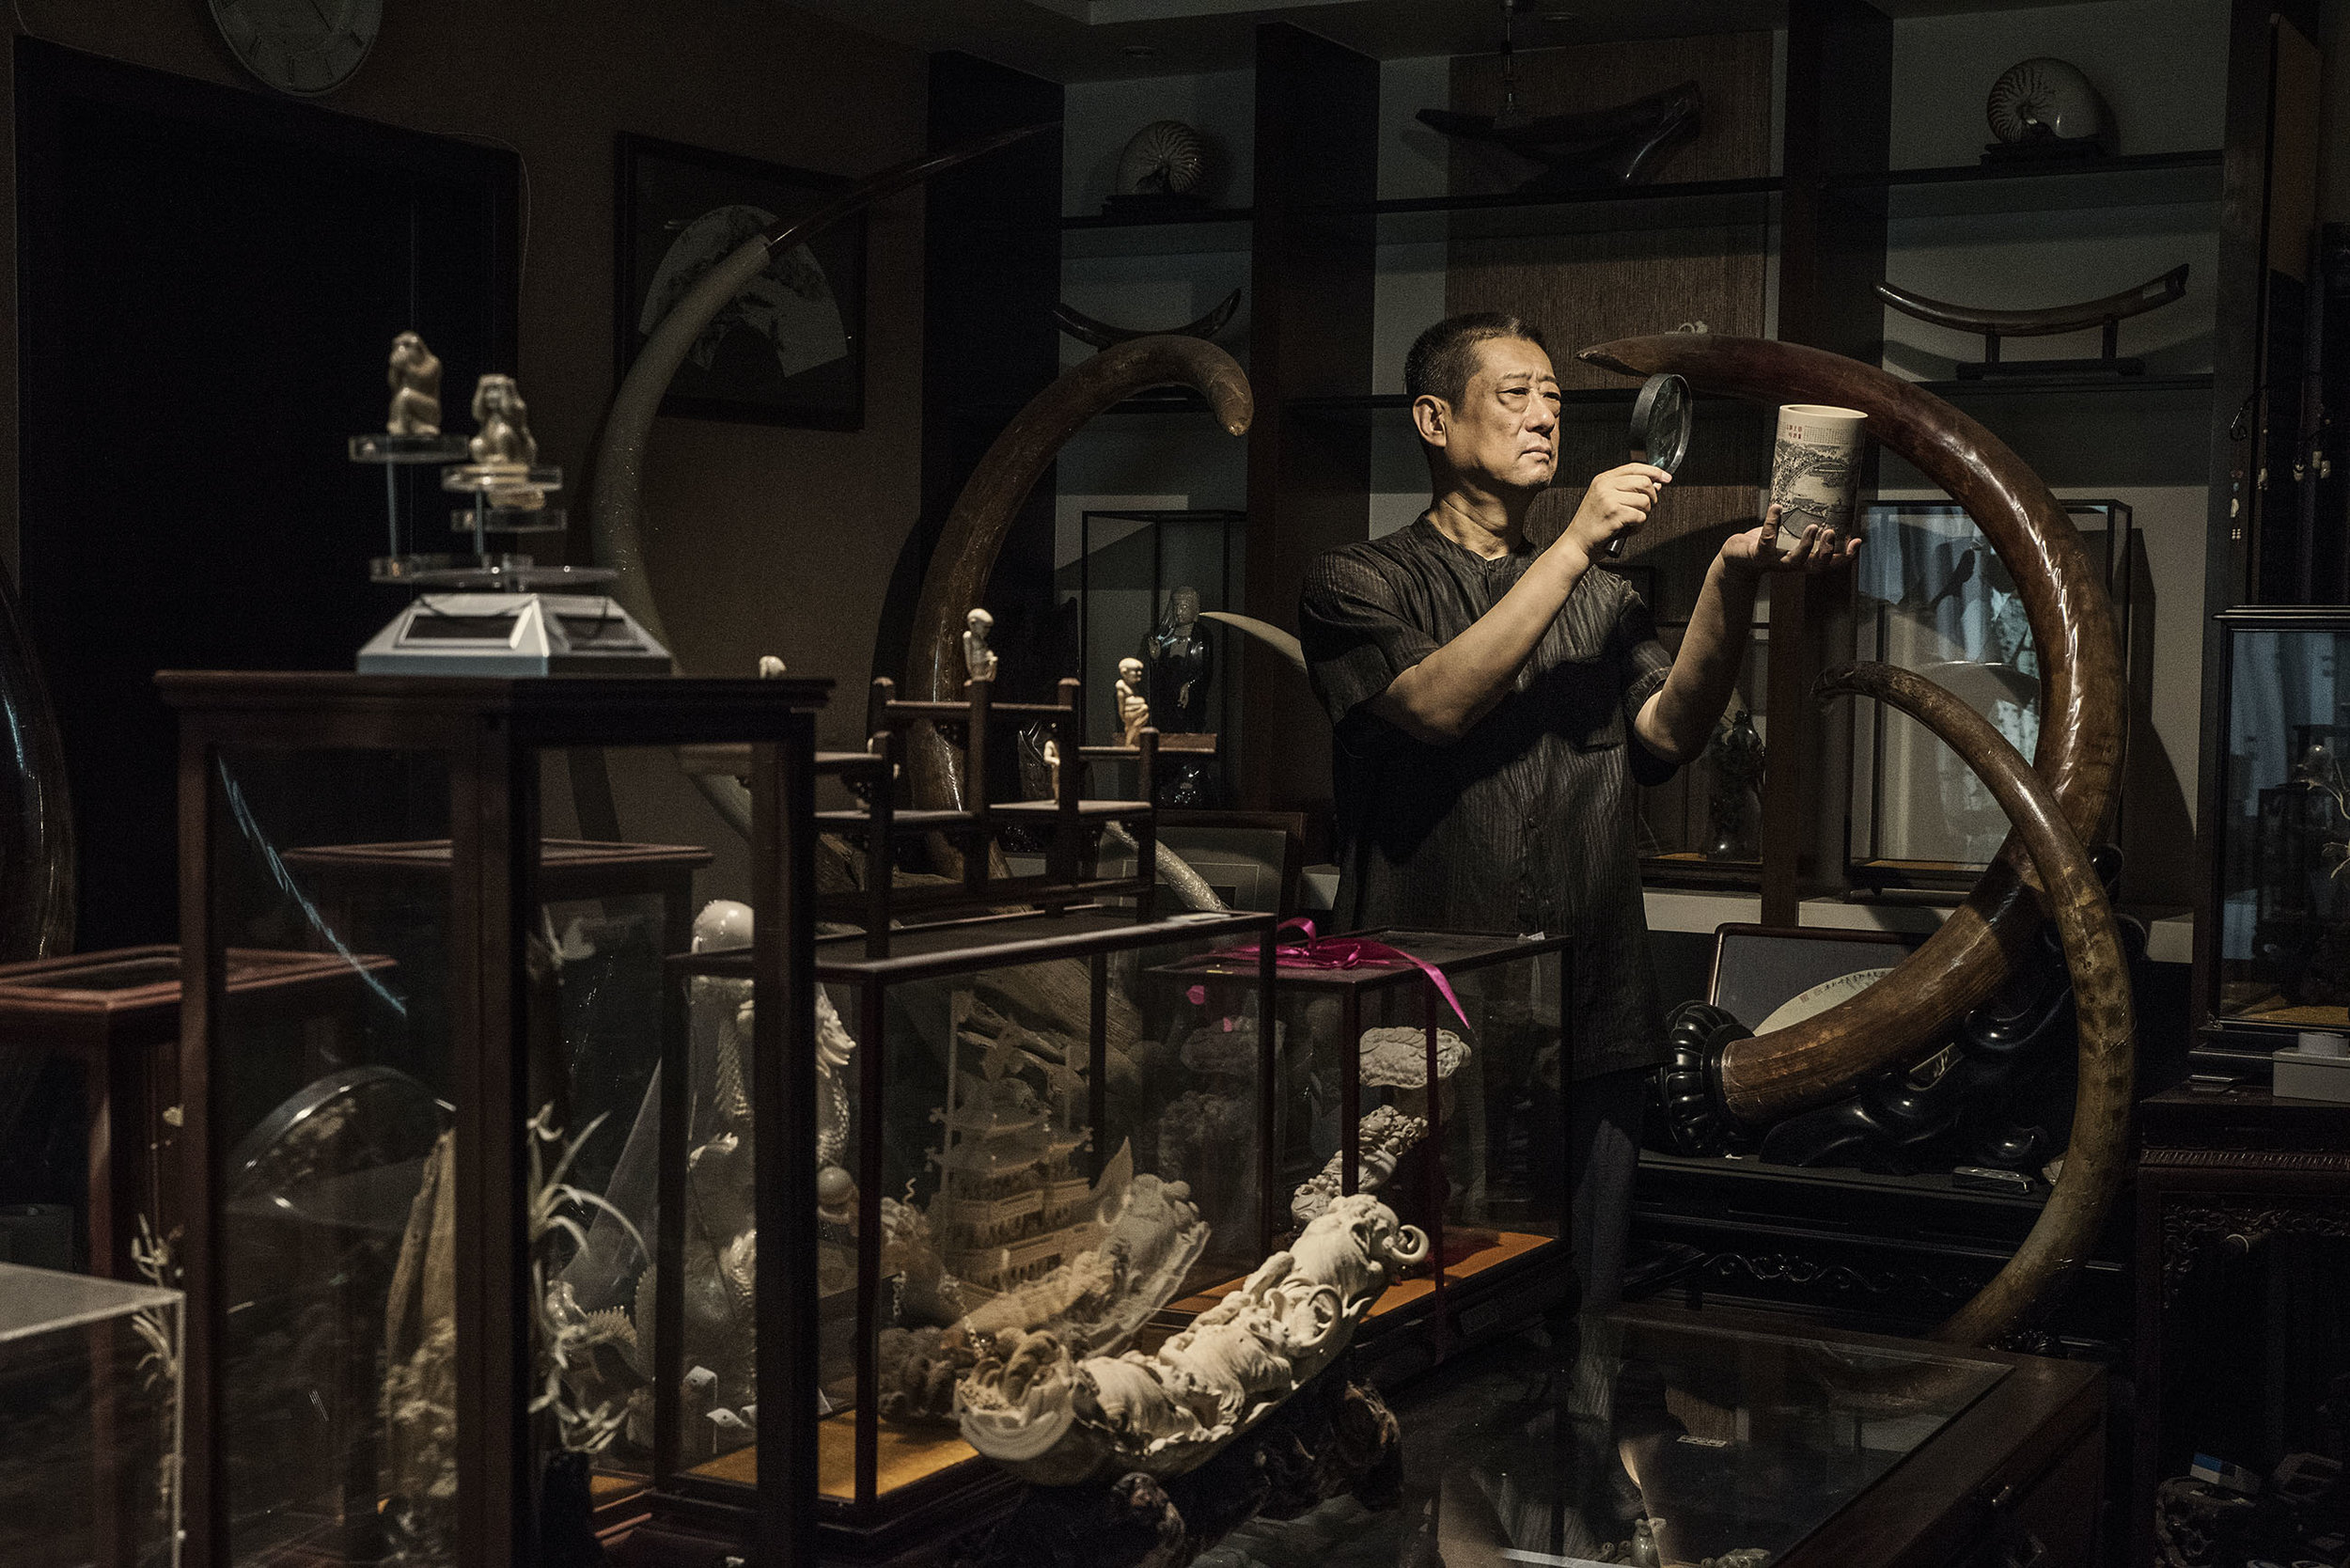 Chen Shu the president of the China Association of Mammoth Ivory Art Research, posing for a portrait at his apartment filled with Mammoth ivory carved objects and tusks.